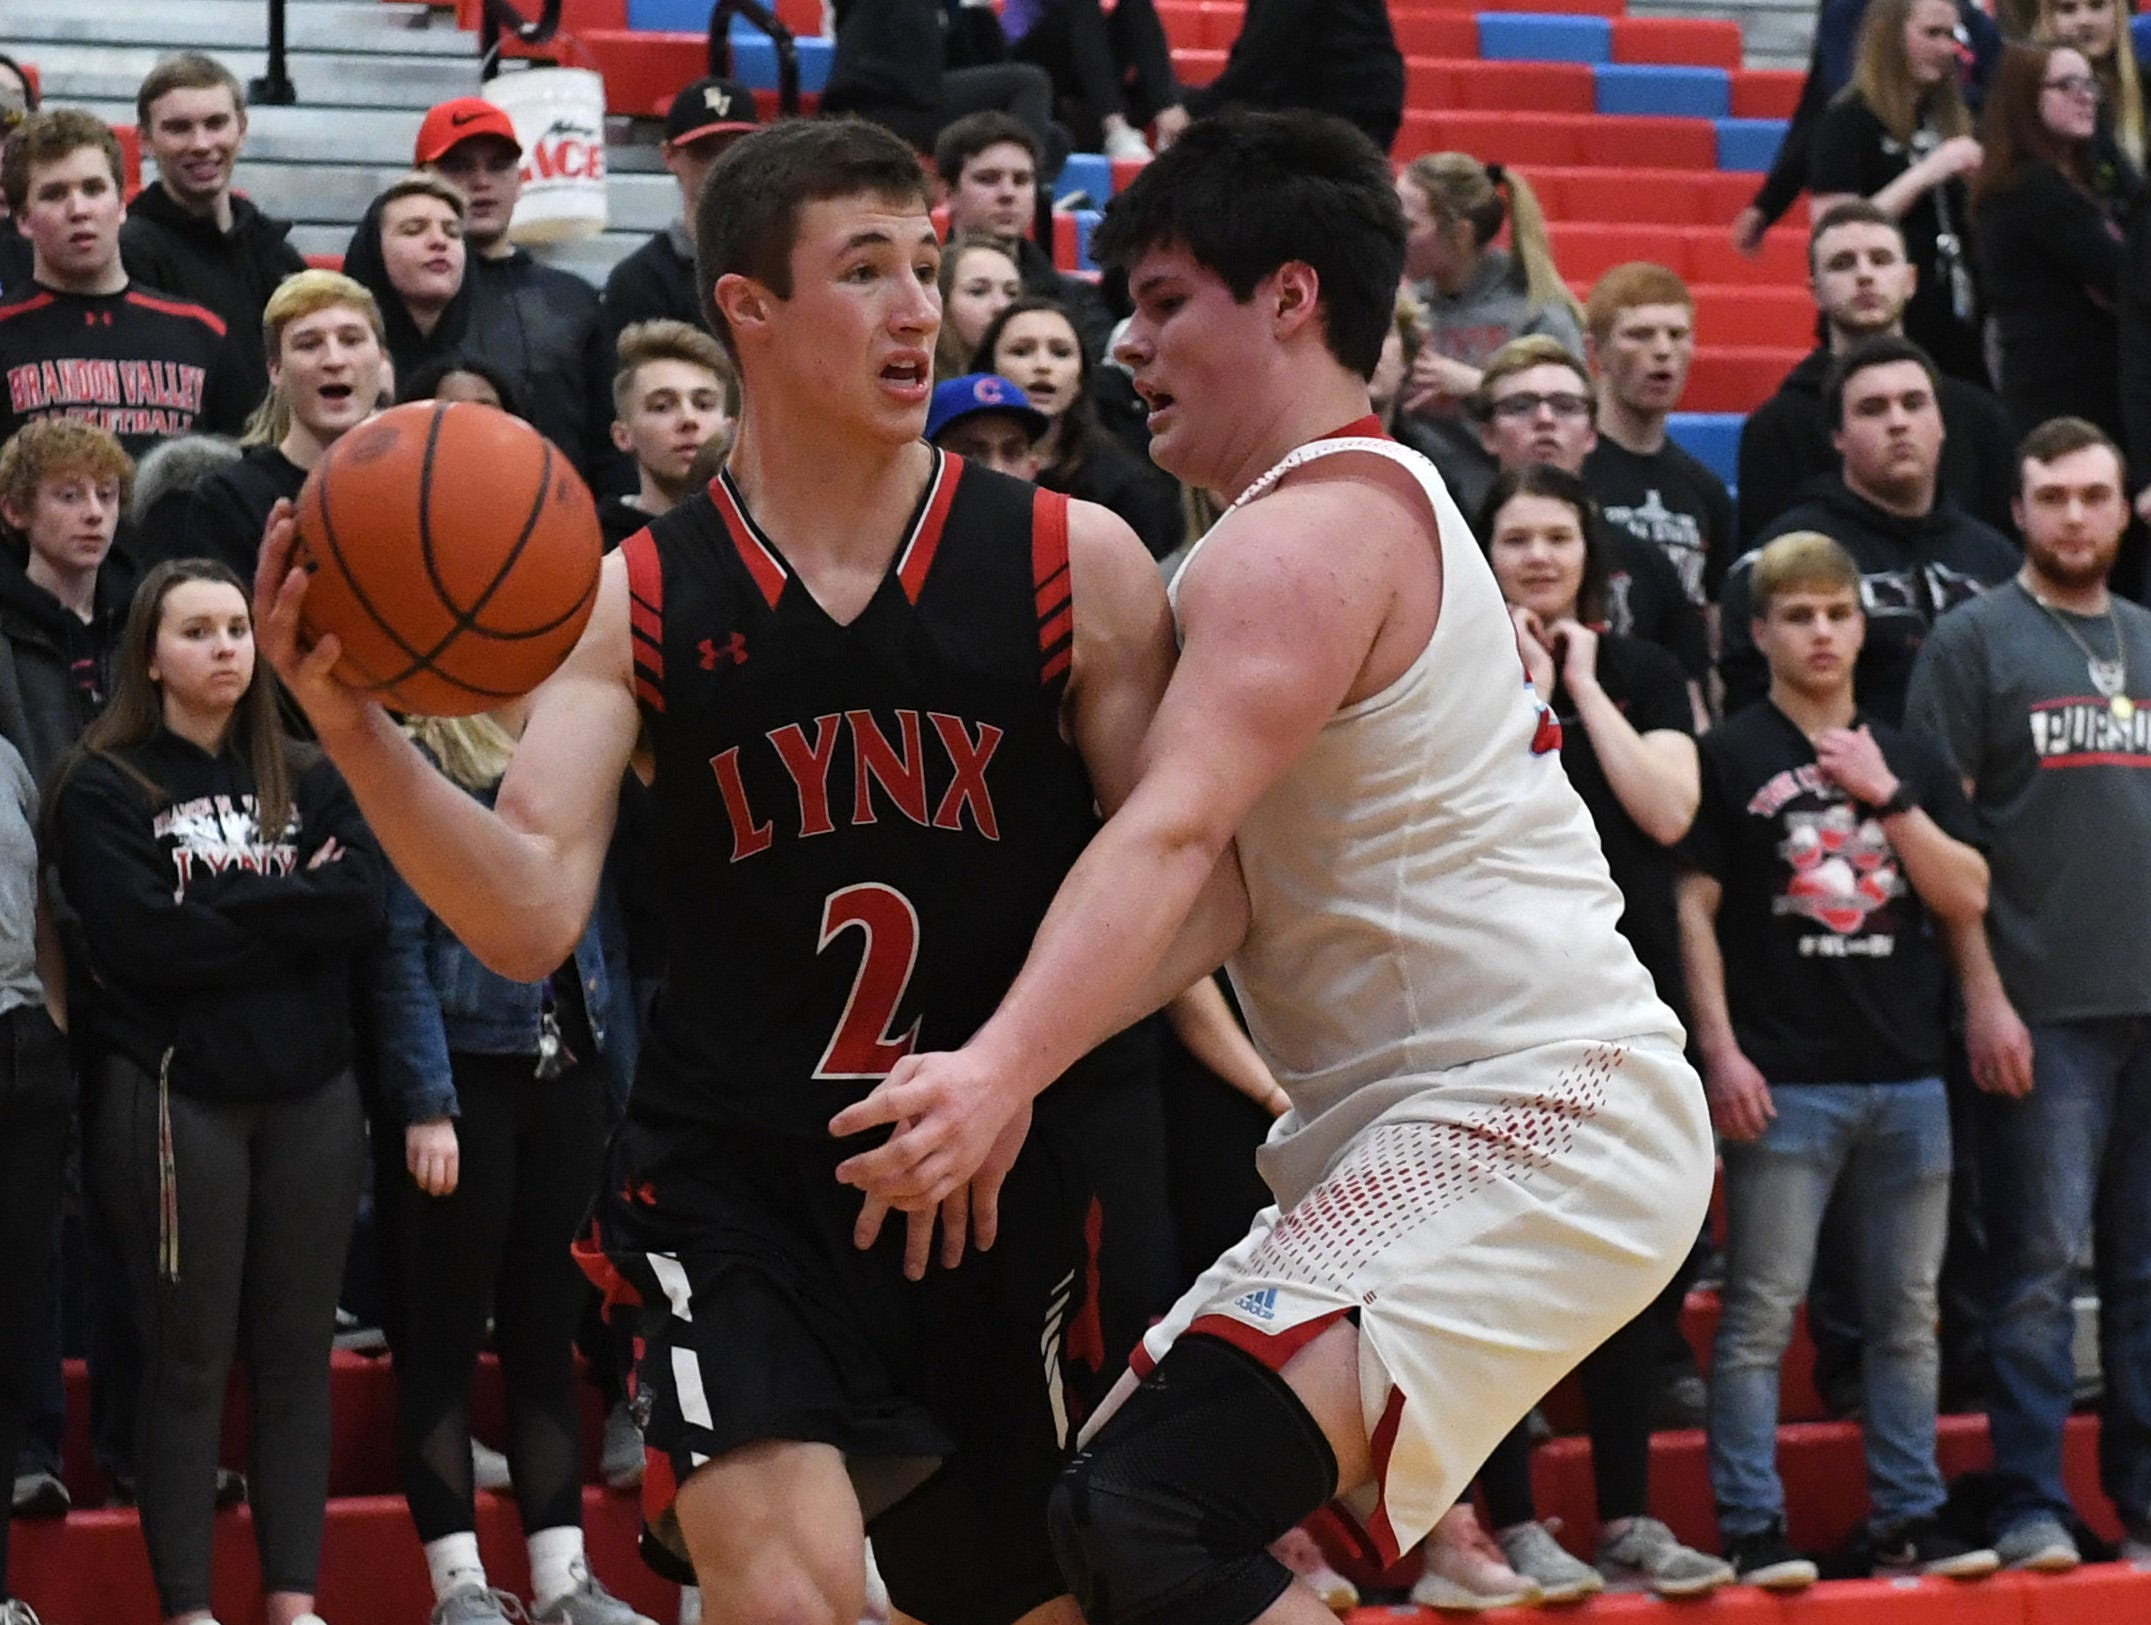 Brandon Valley's Carter Olthoff (2) looks to pass the ball during a game against Lincoln in Sioux Falls, S.D., Tuesday, Feb. 5, 2019.